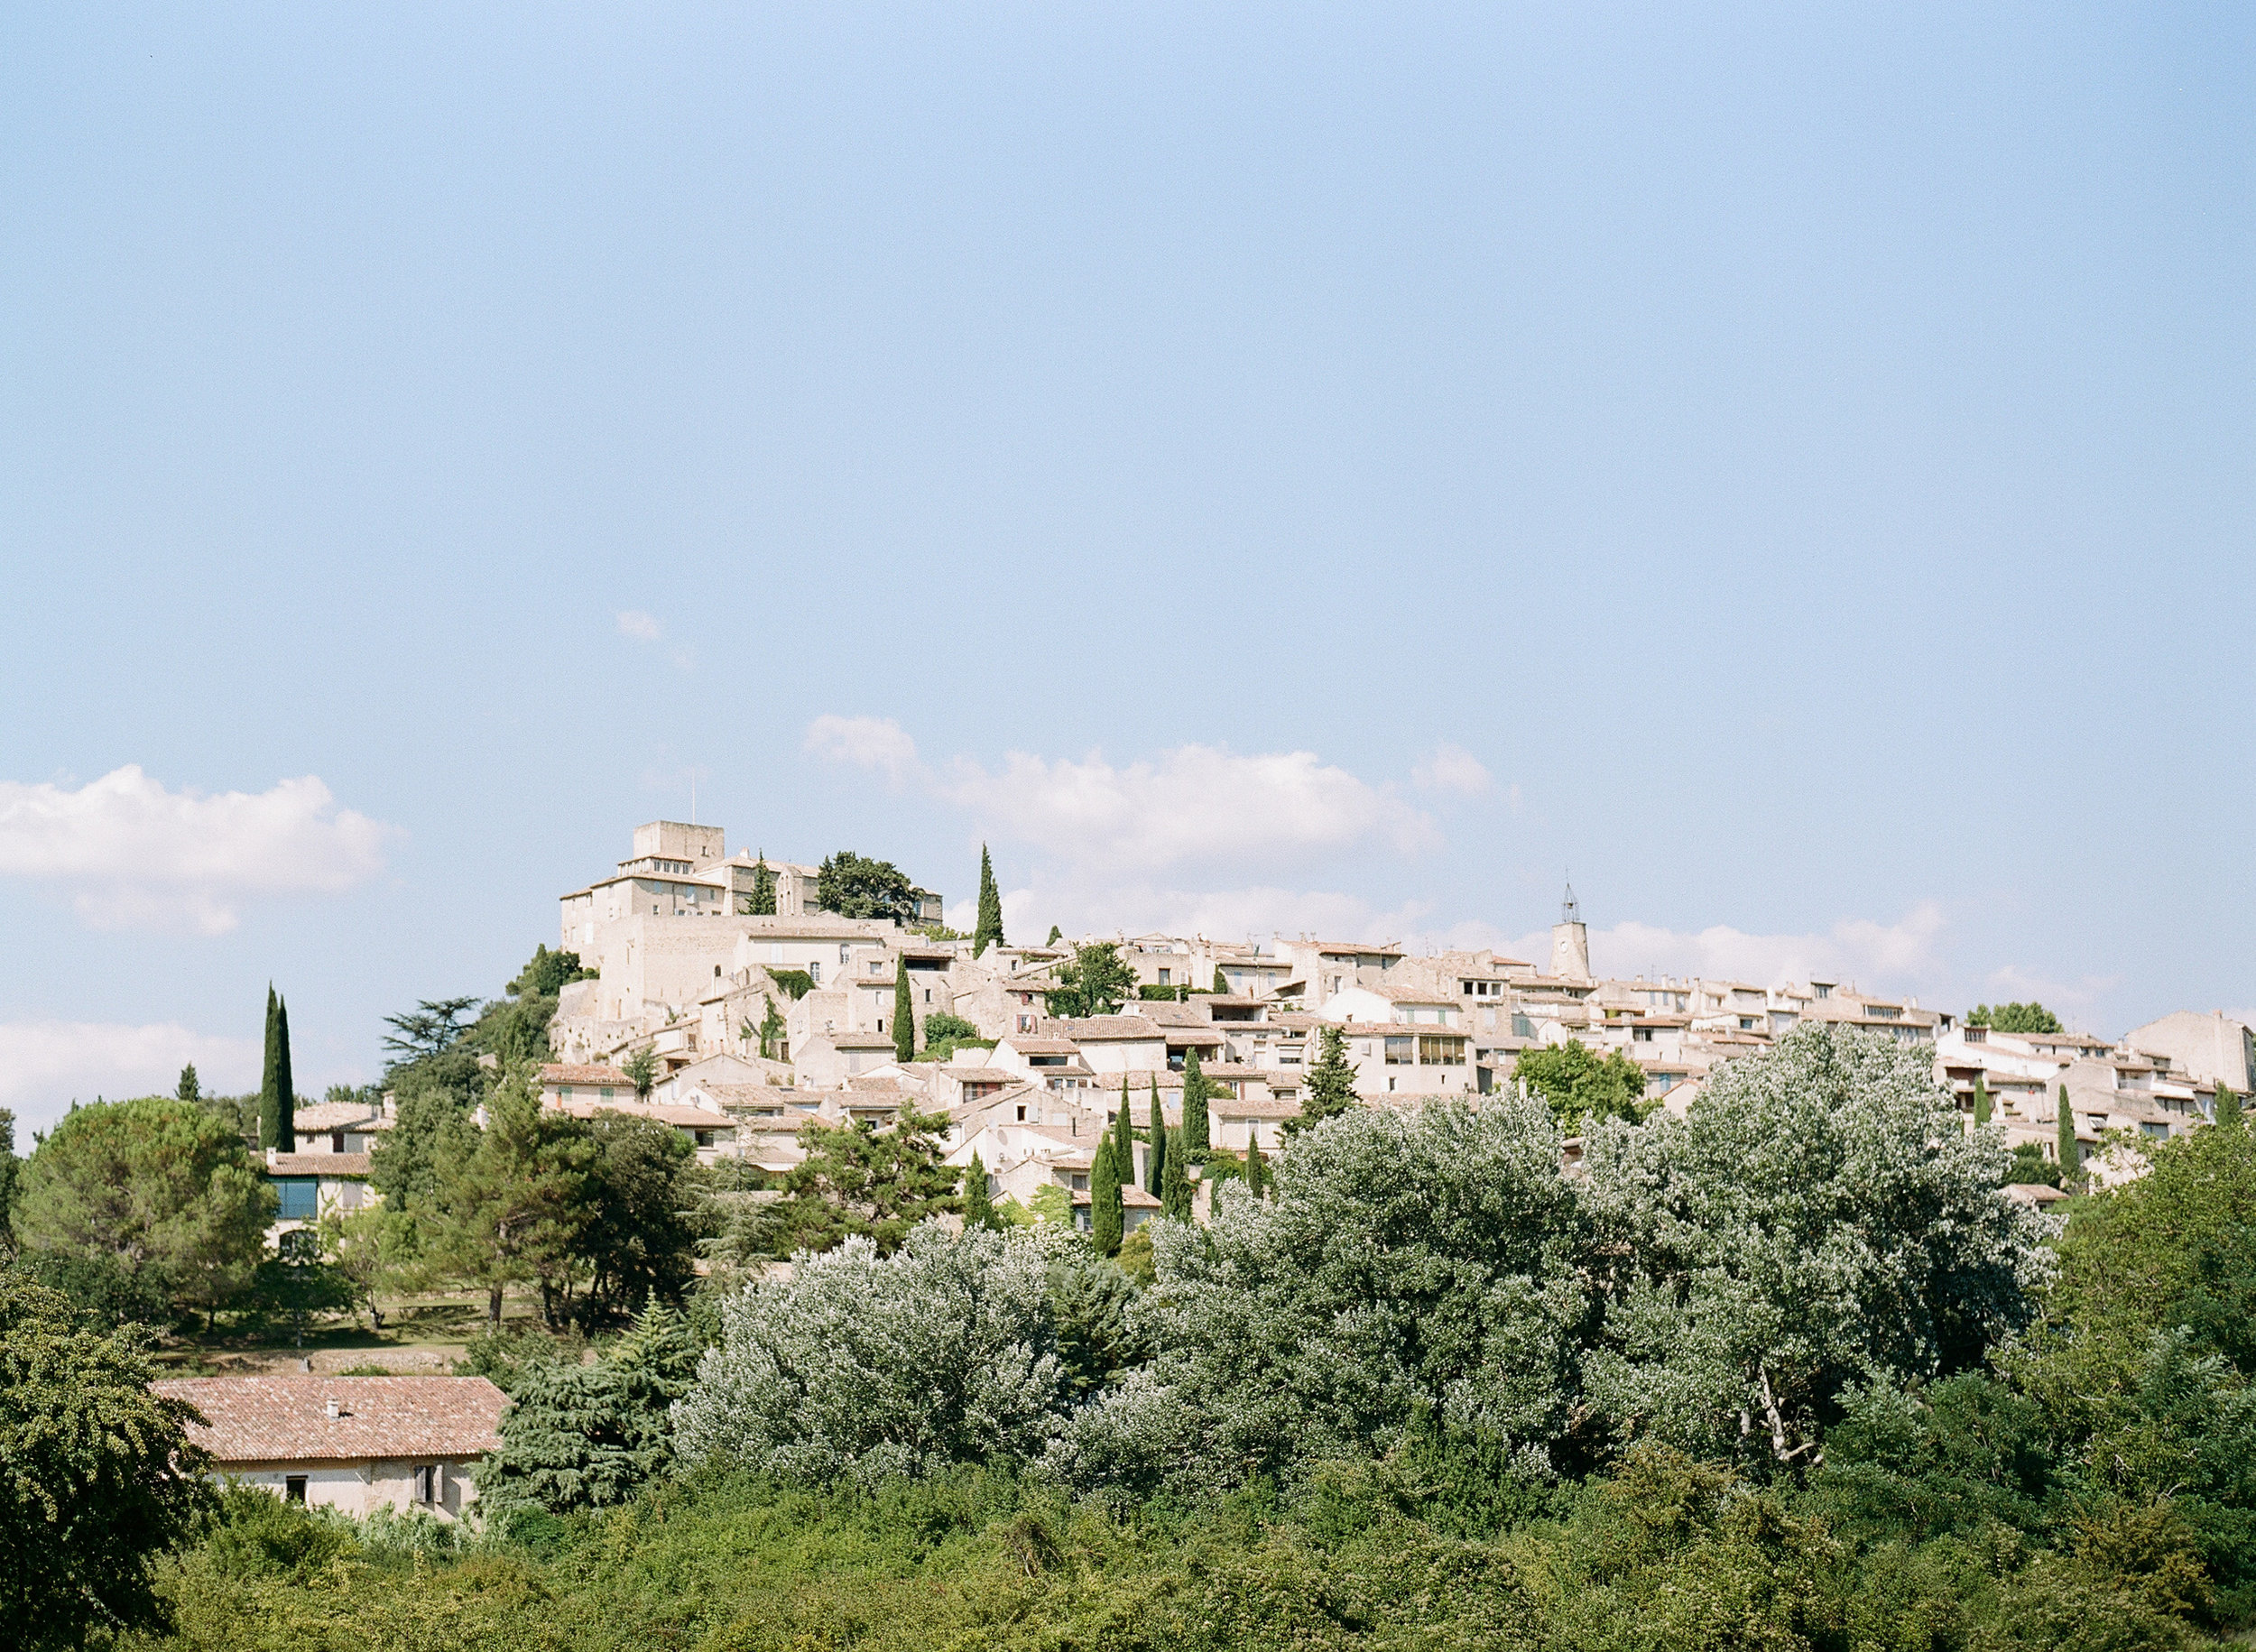 A view of a village on a hill in Provence, France; Sylvie Gil Photography